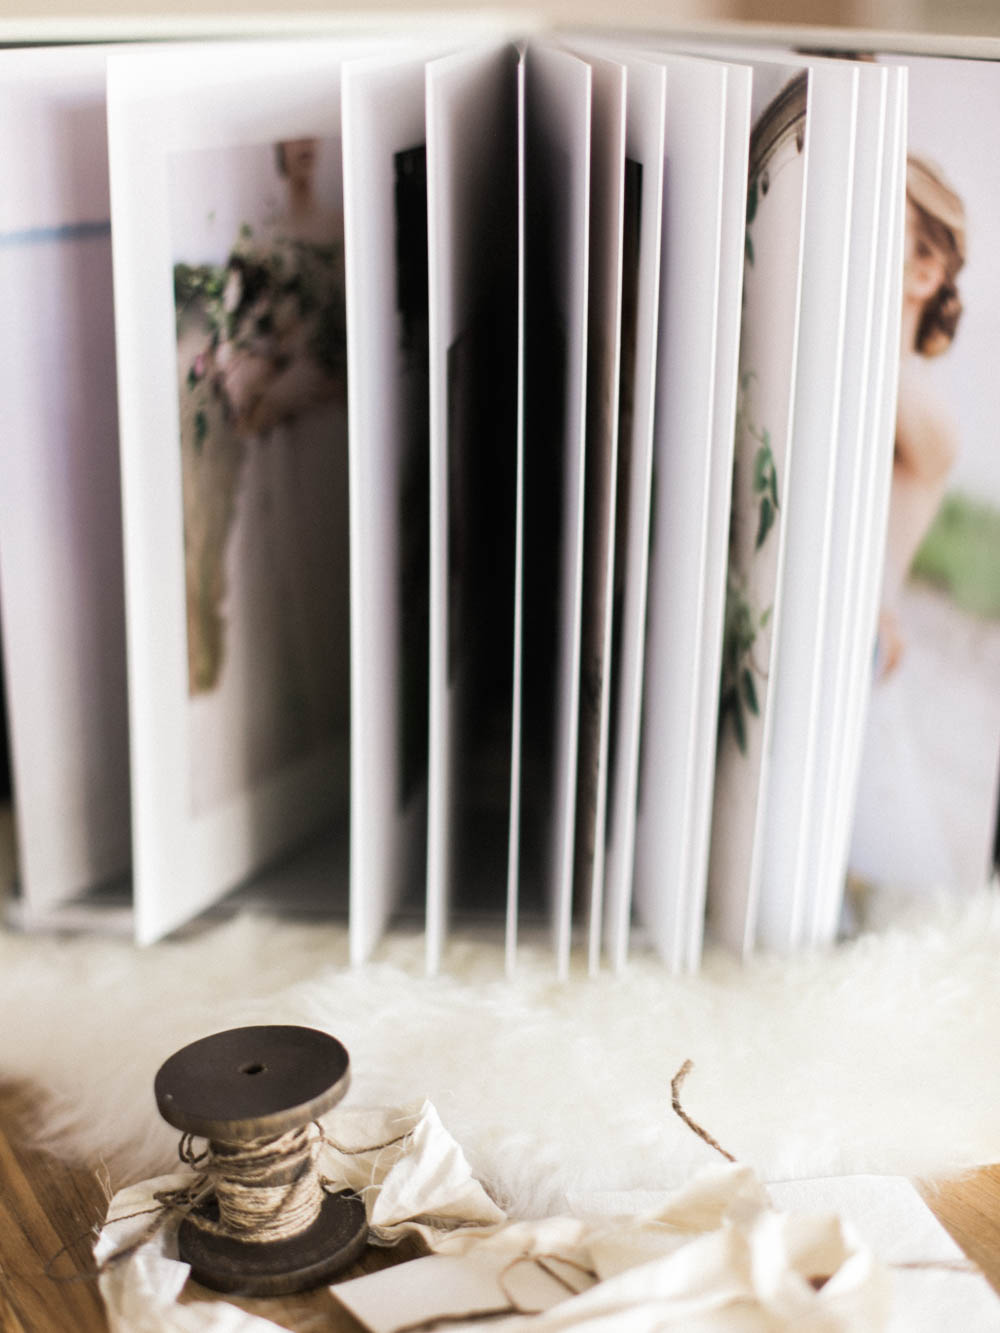 Albums Katie Grant Photography-32.jpg